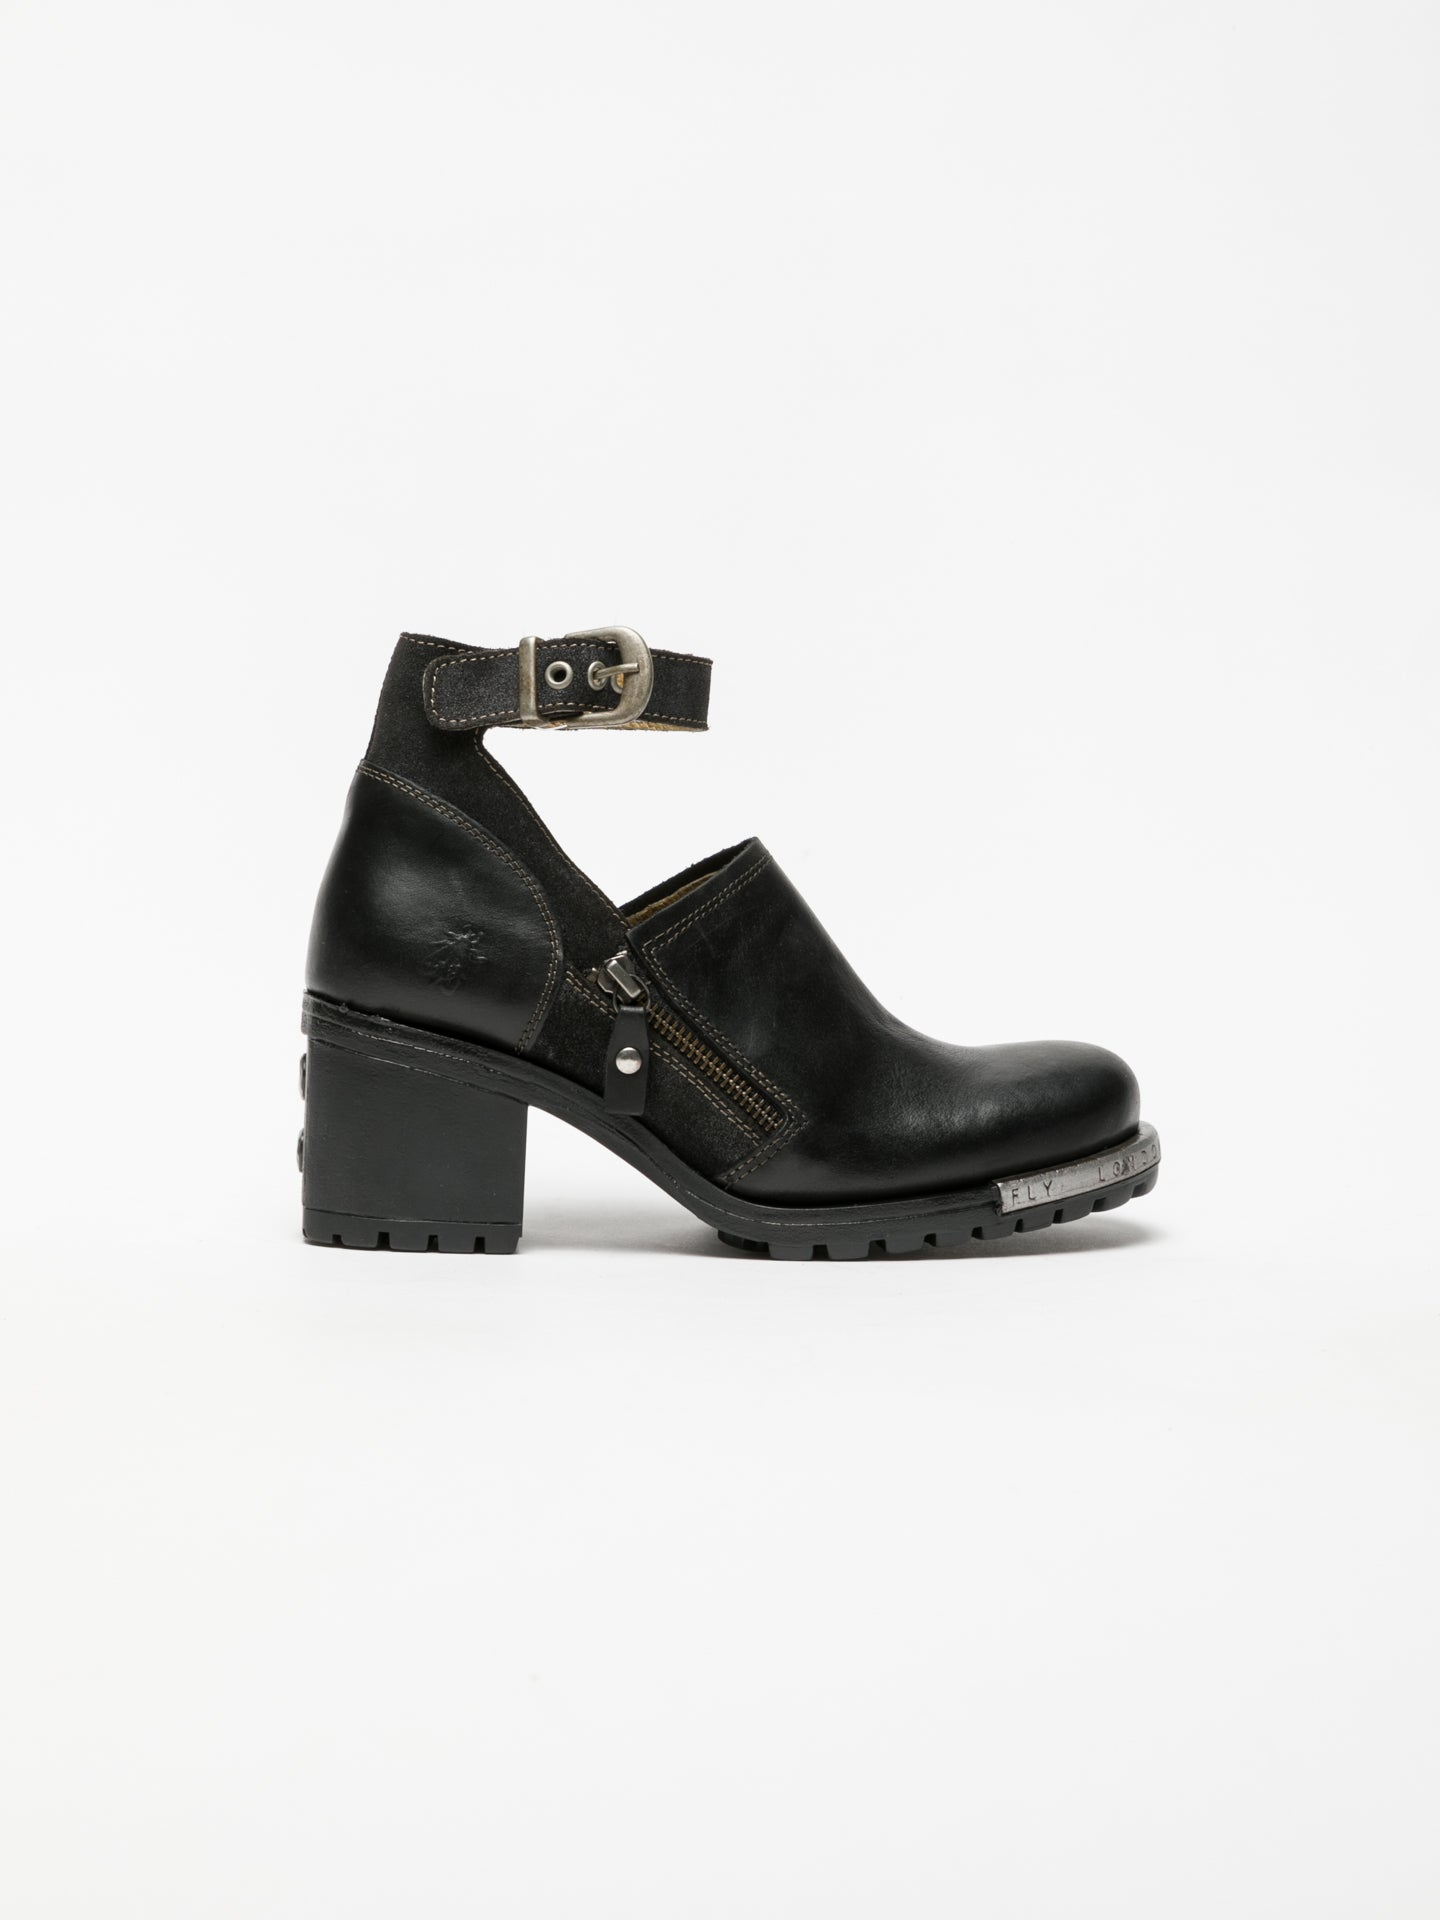 Fly London Black Monk Shoes